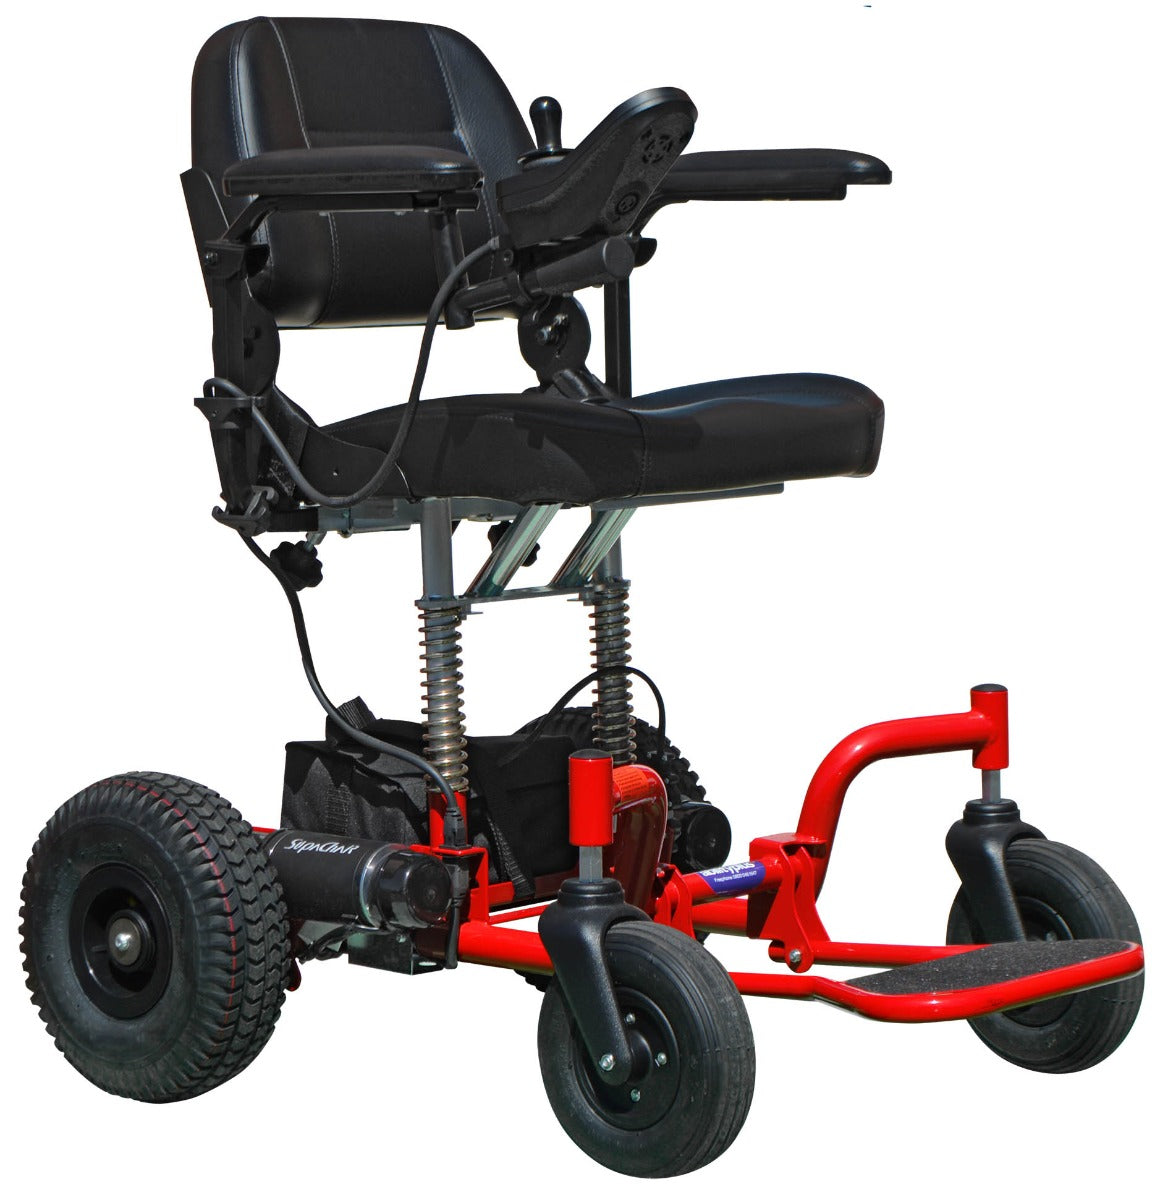 New SupaChair Safari Sport Lightweight Transportable Powerchair with Suspension